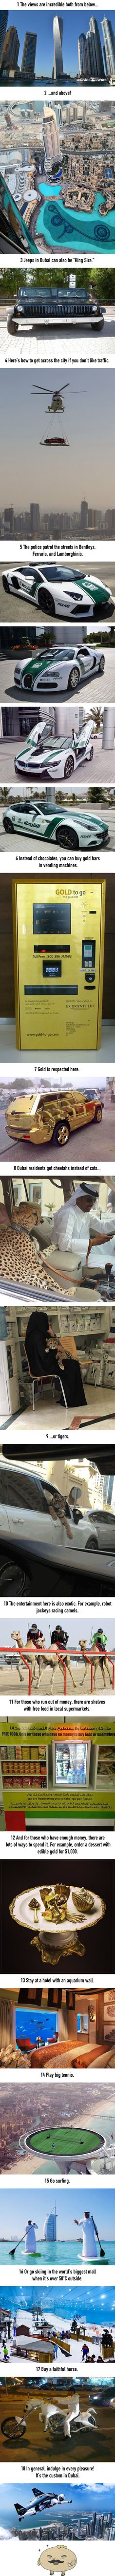 18 Incredible Things That Are Possible Only in Dubai - 9GAG